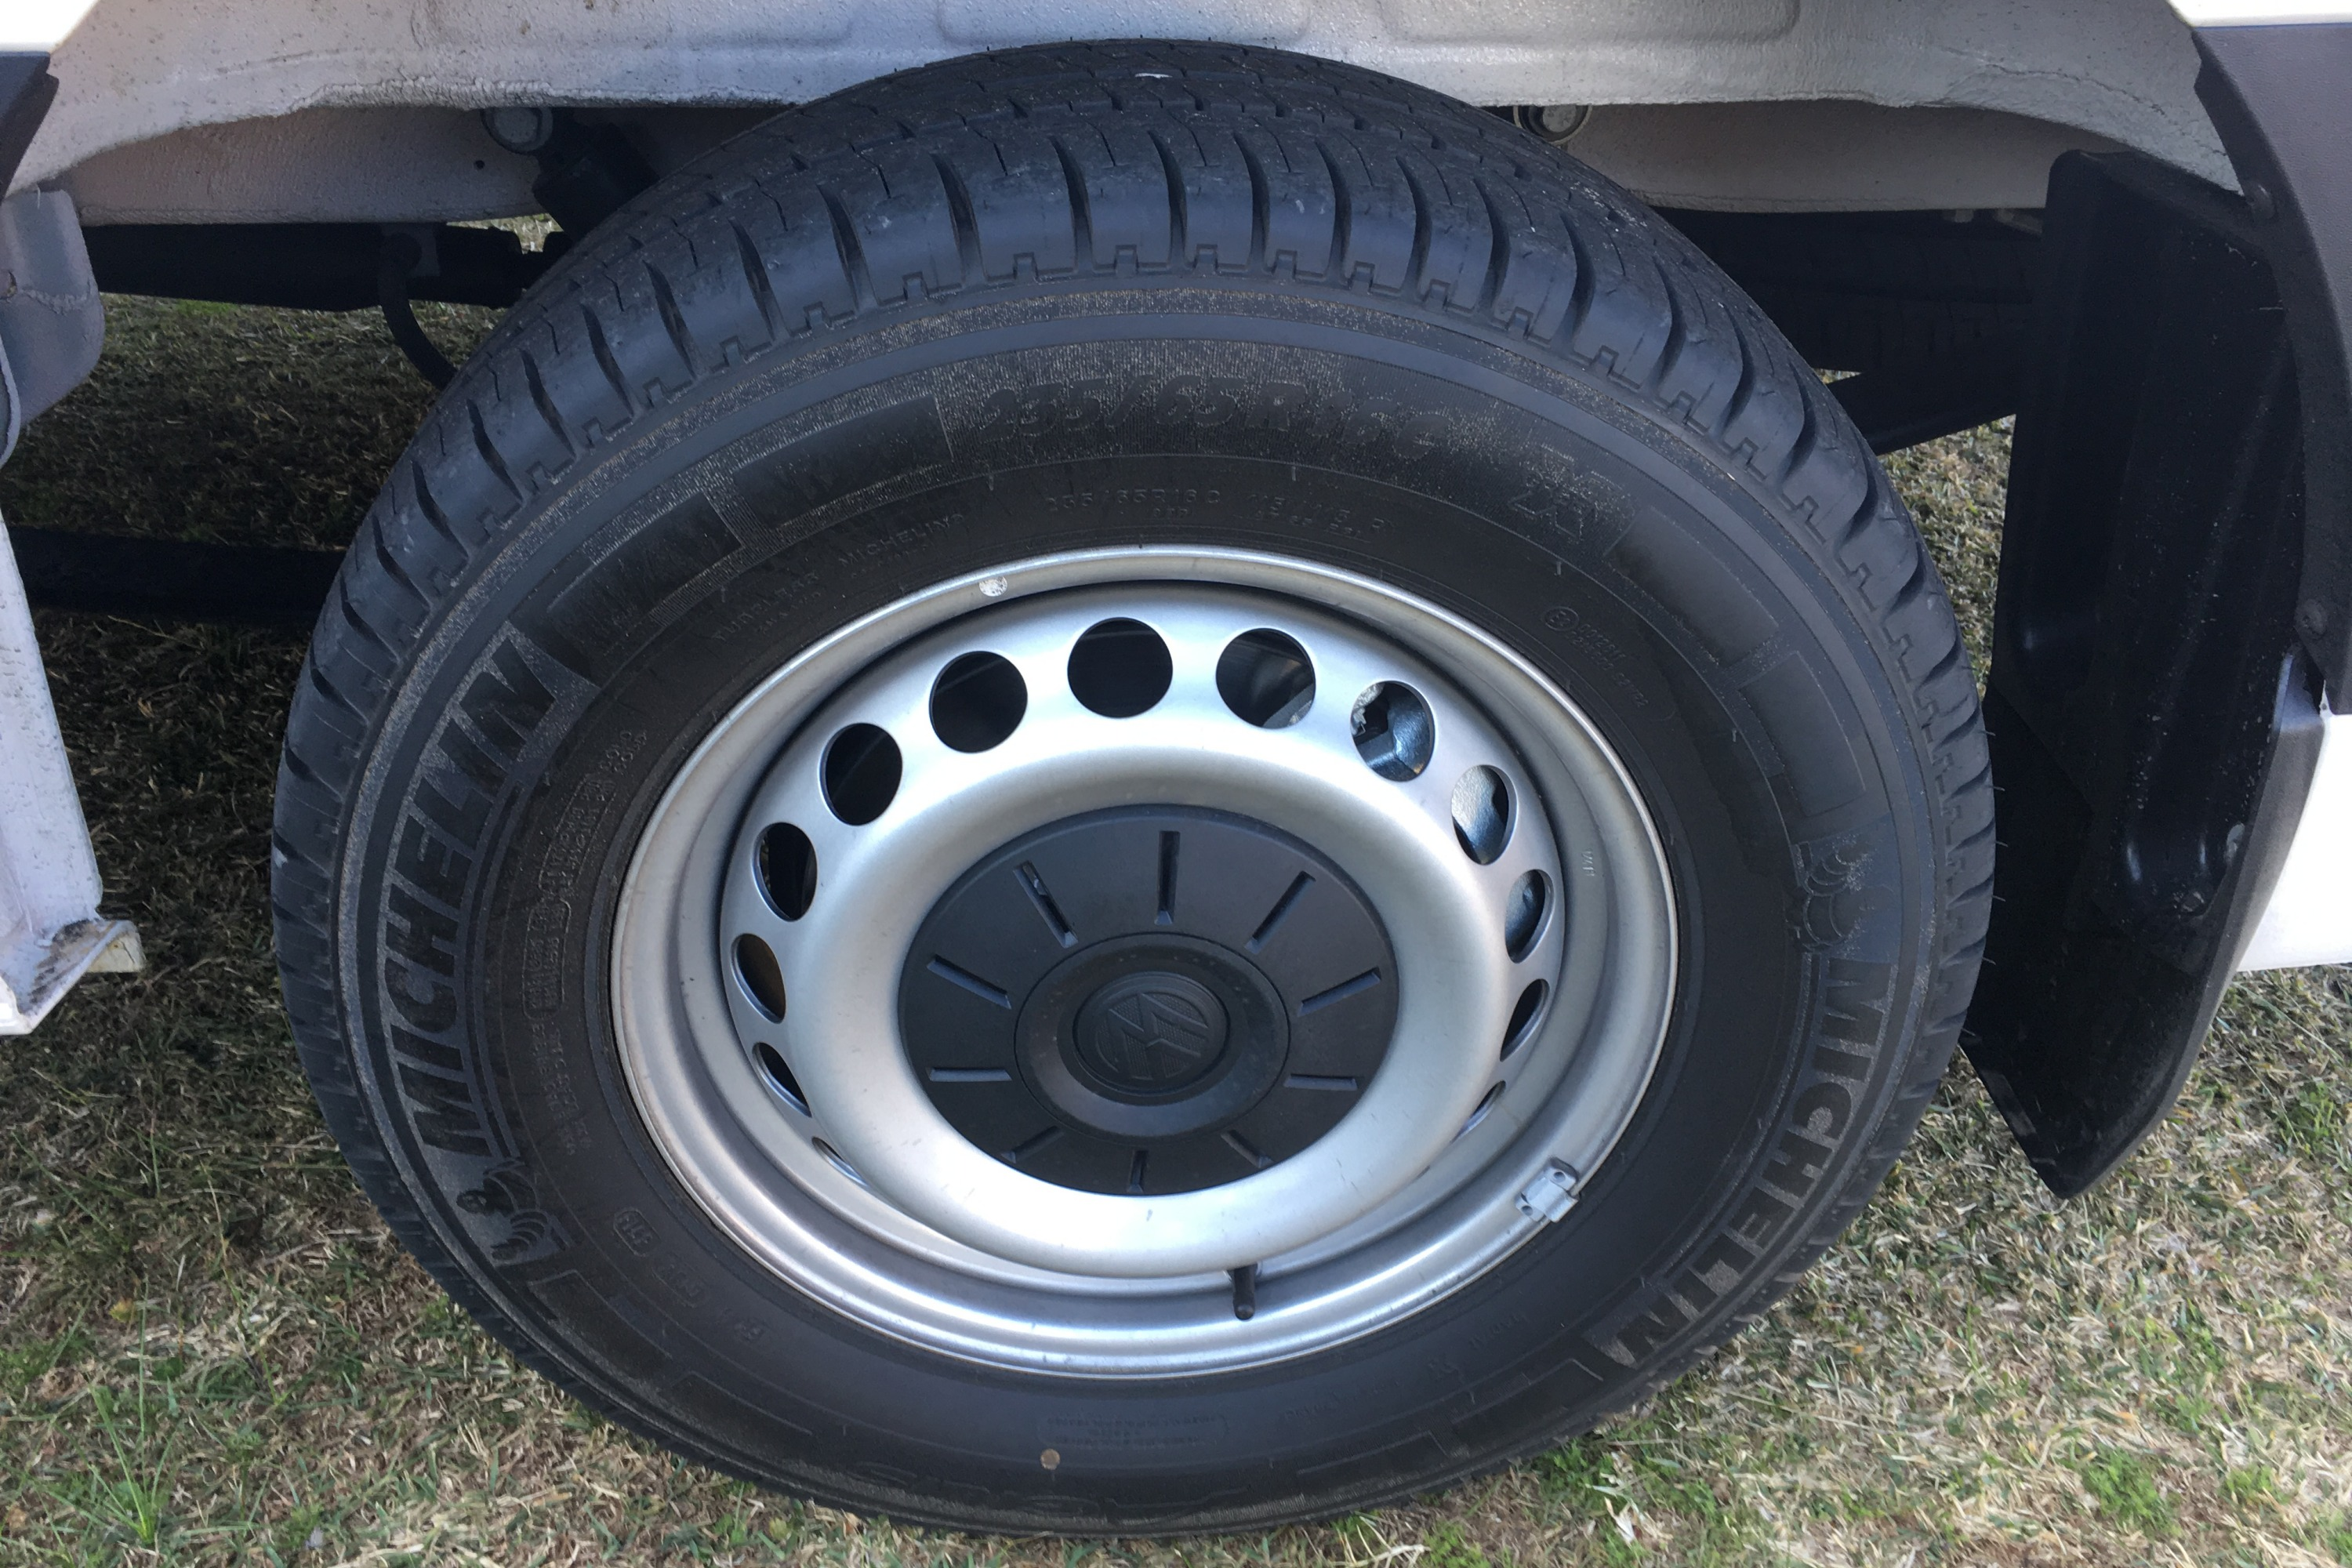 2019 VW Crafter 4MOTION 6 tyres